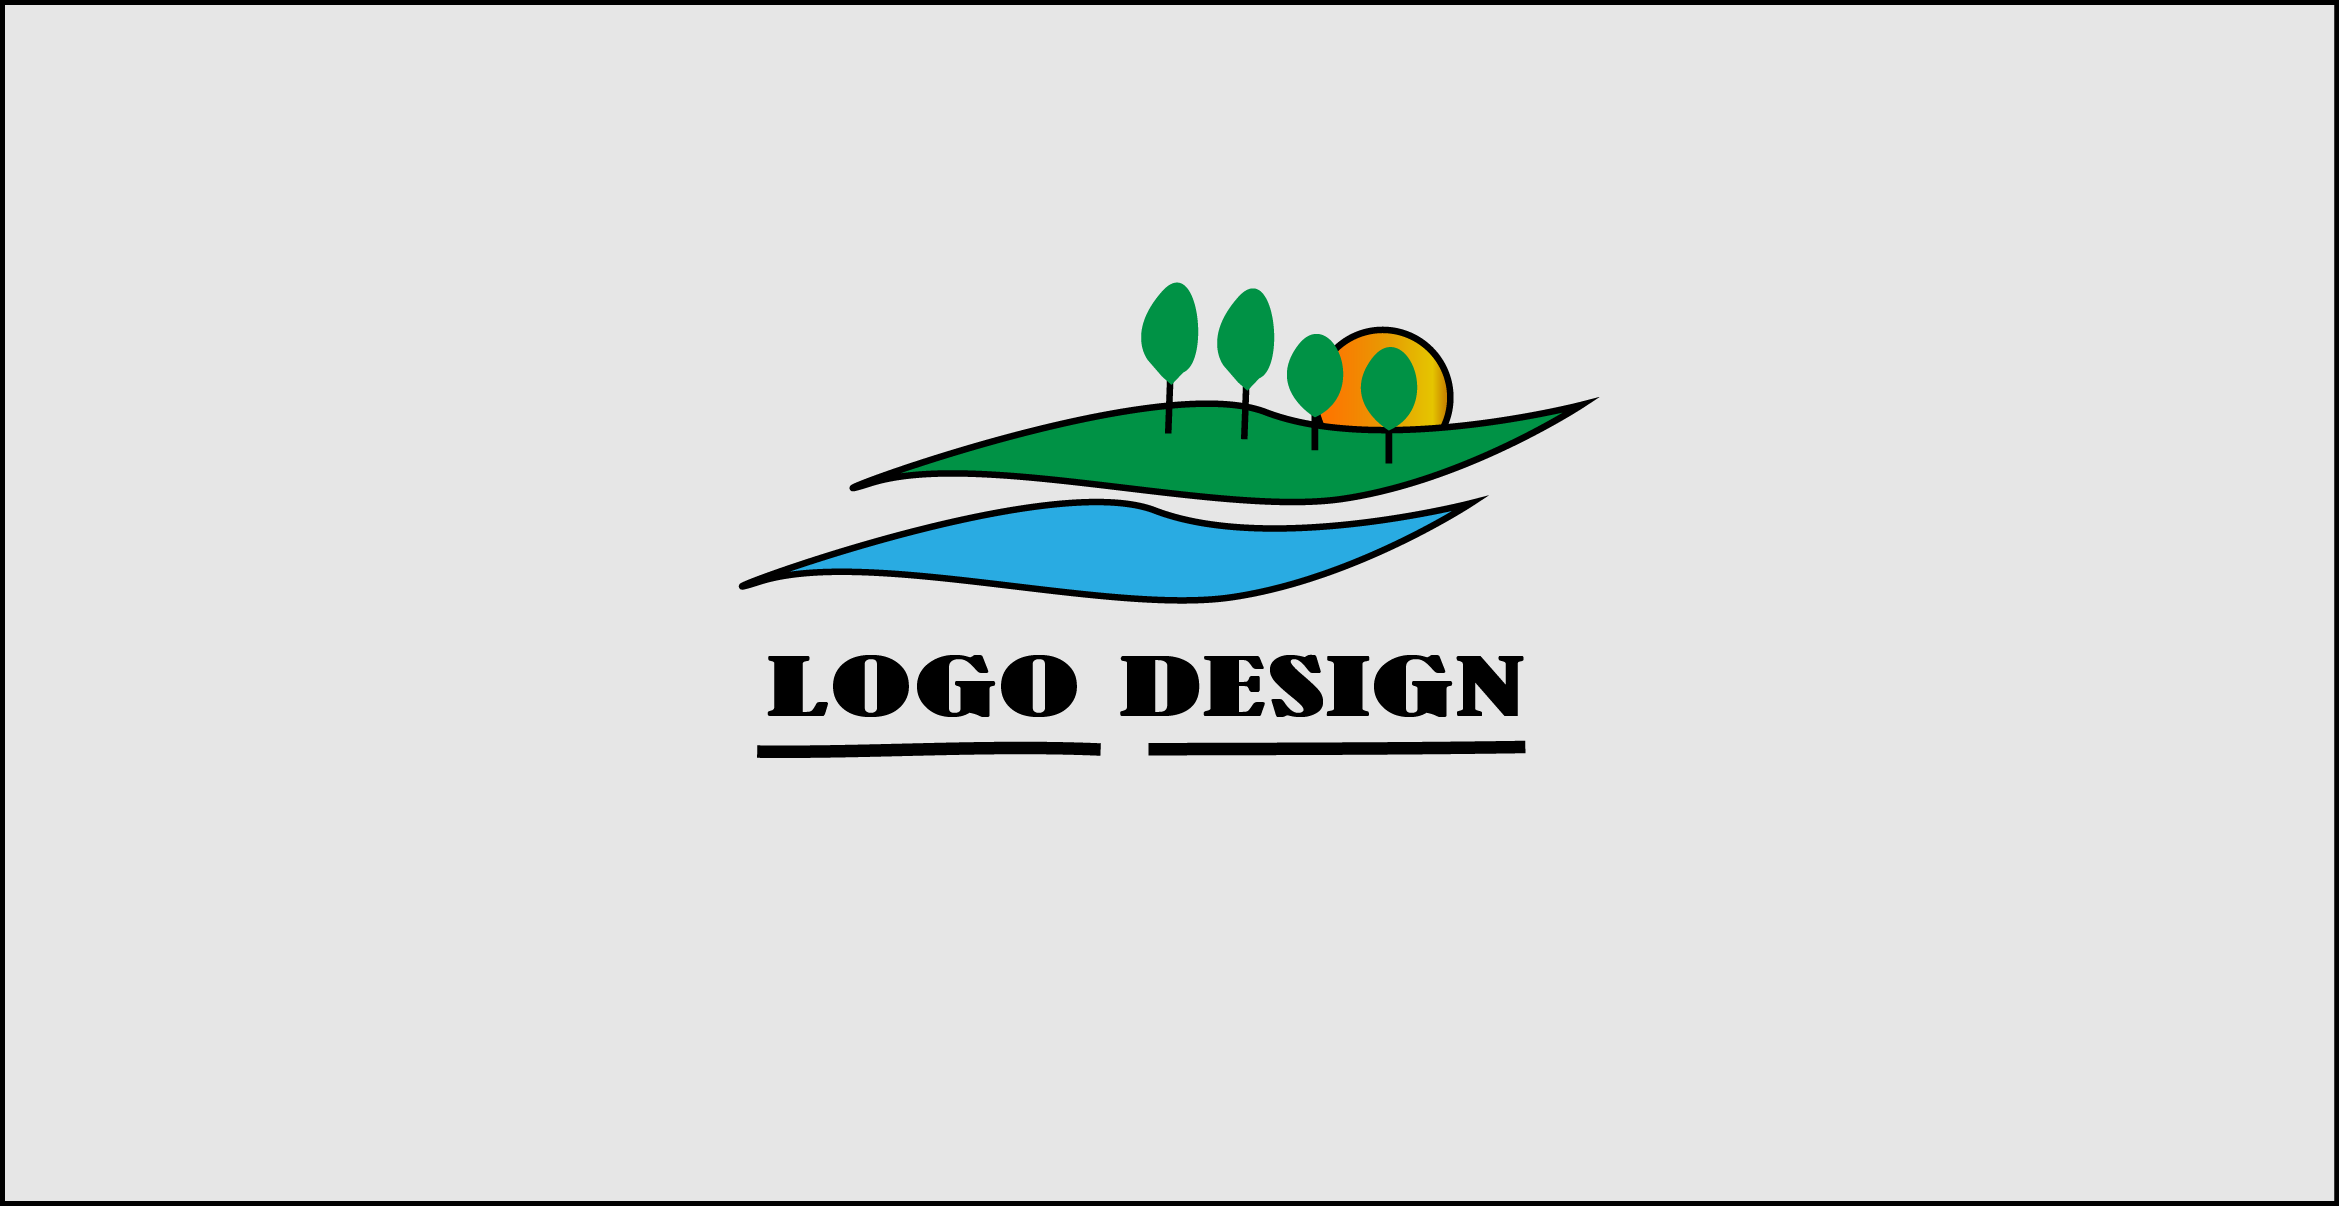 I am a graphics designer . I can make logo design